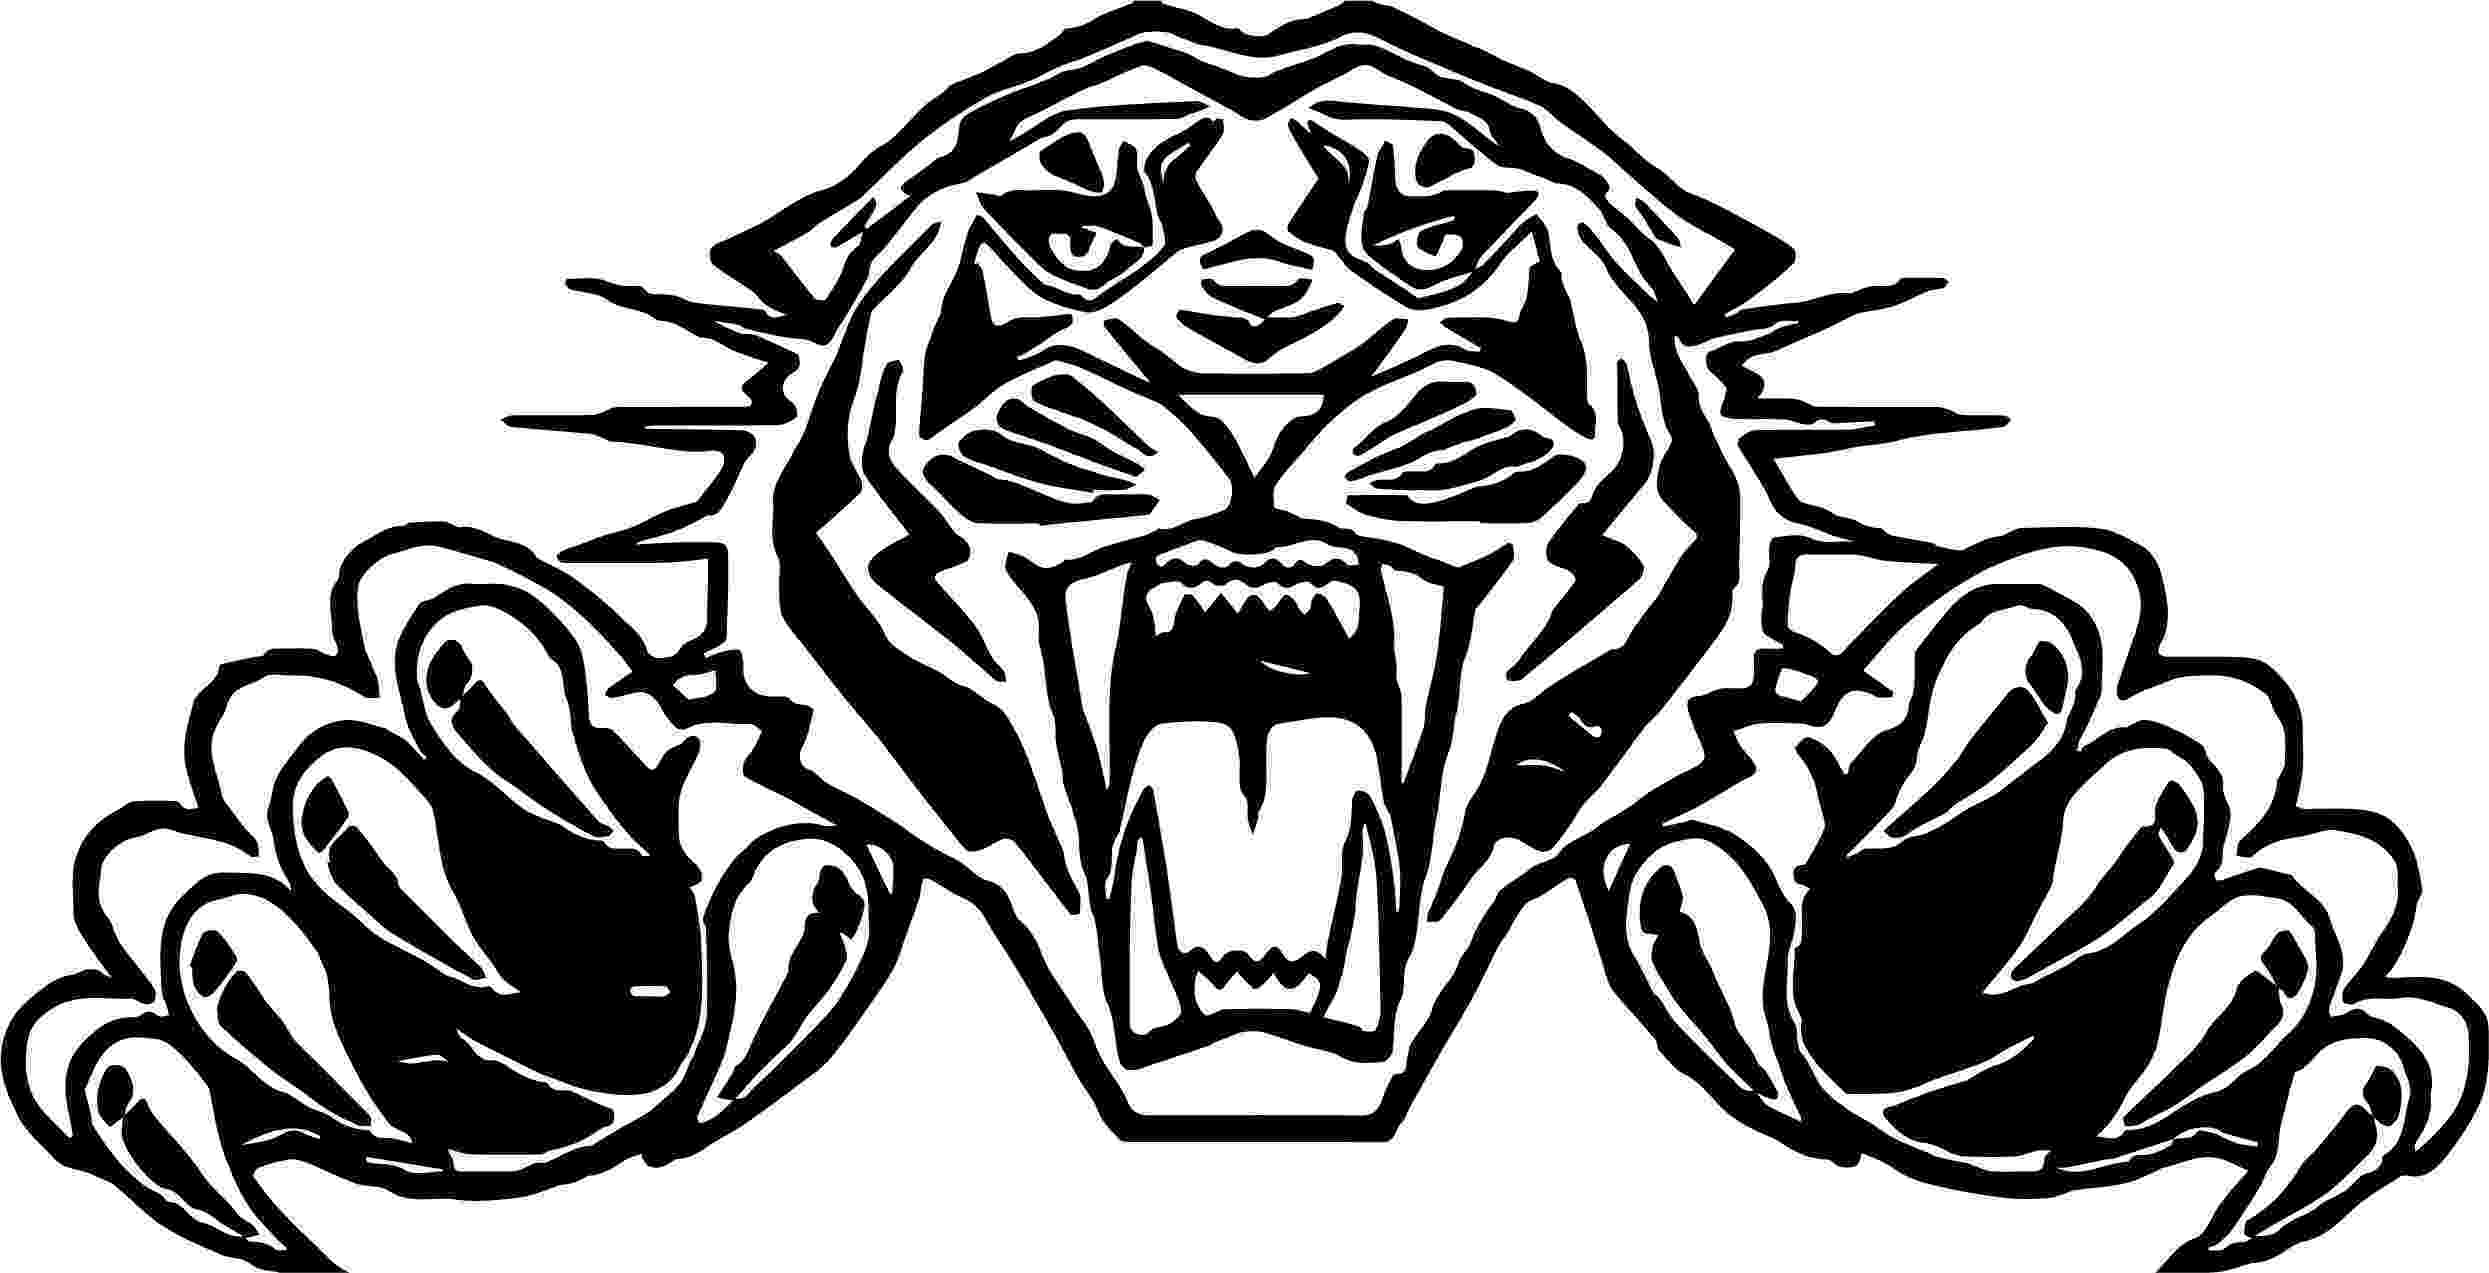 tiger face coloring page tiger outline drawing clipart best coloring page face tiger